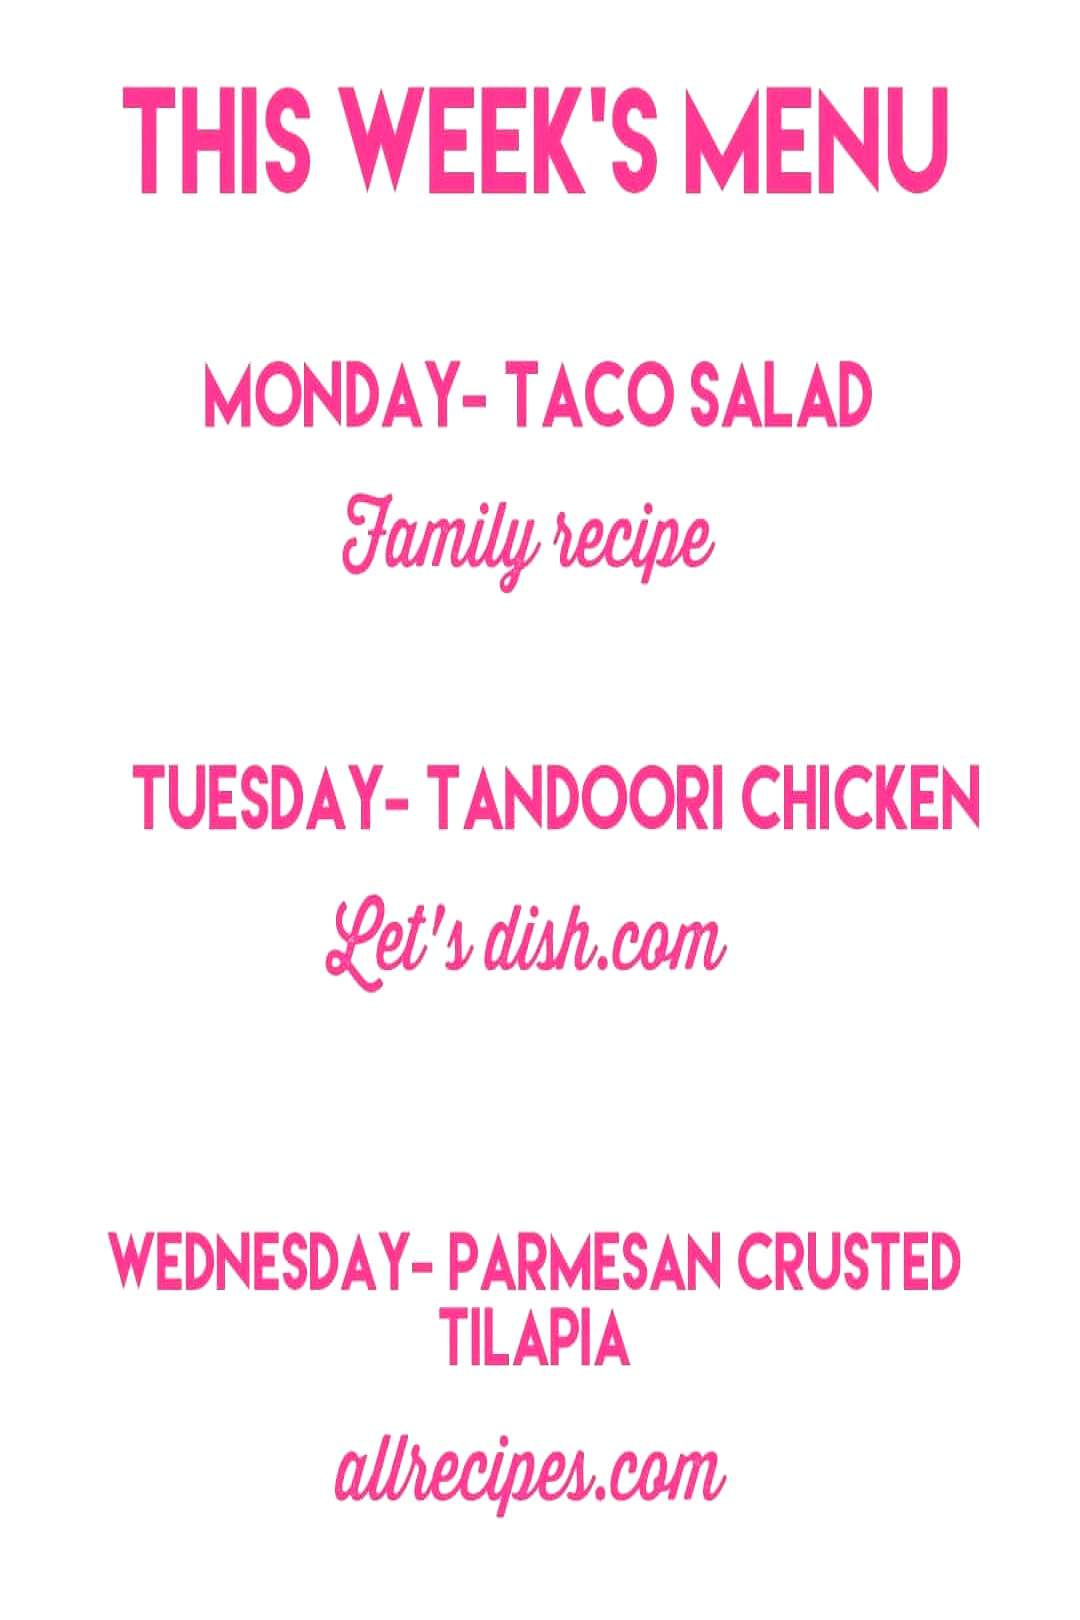 Forgot to share this! A bit late but here is this weeks menu. Fi